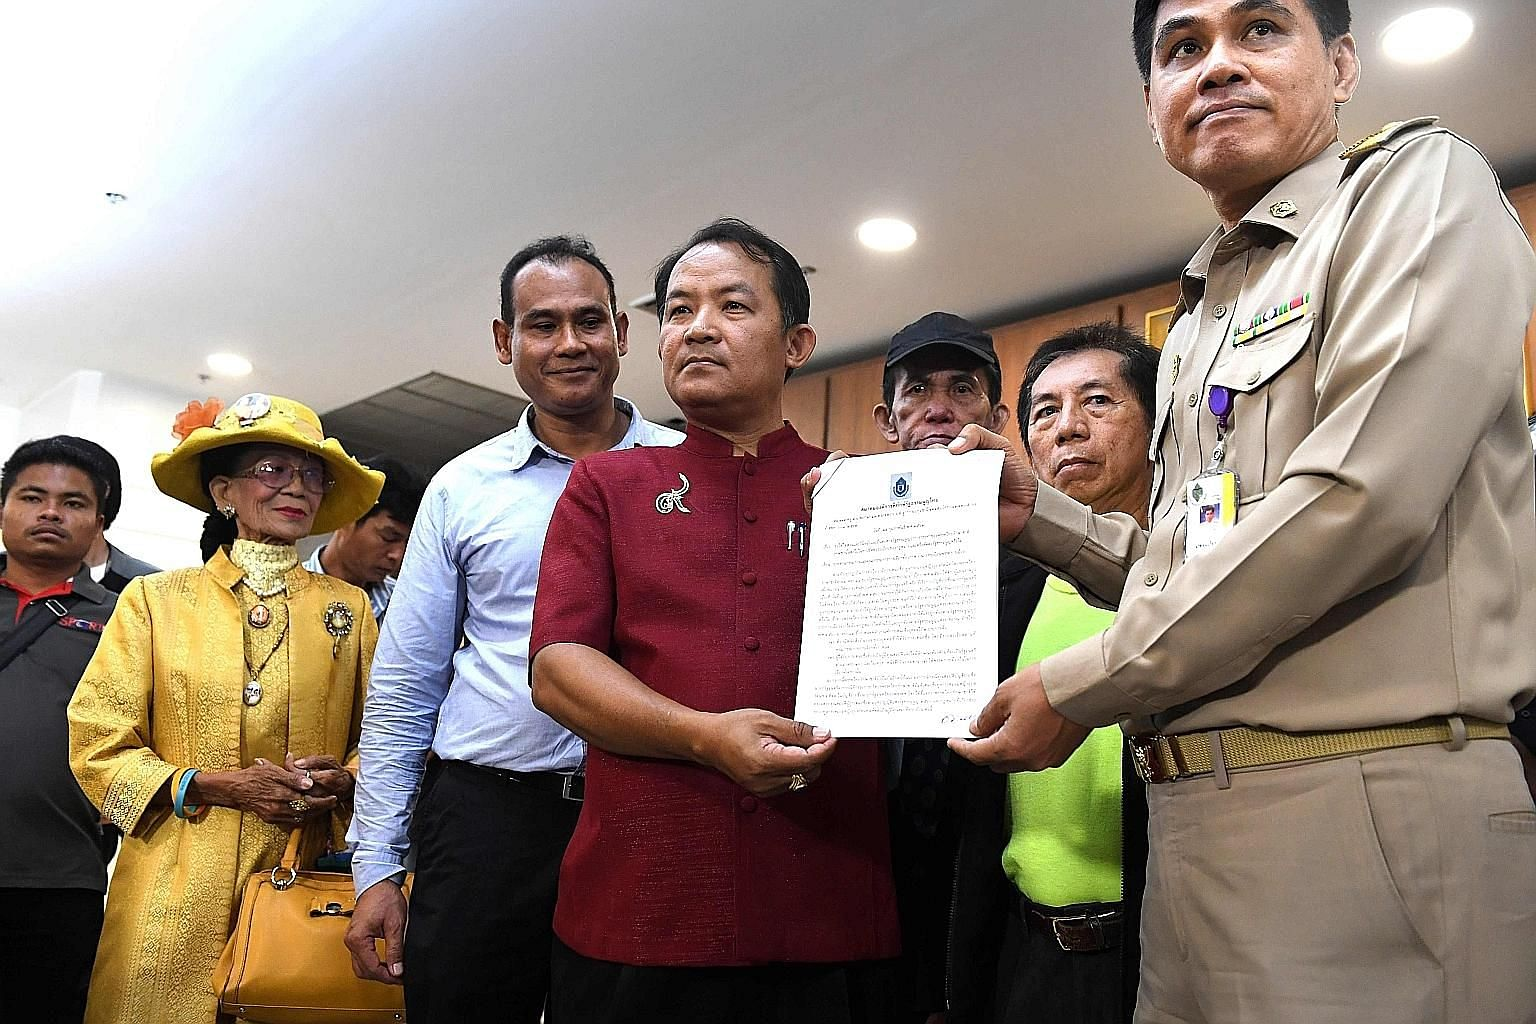 Mr Srisuwan Janya (centre) of the Association for the Protection of the Constitution with his petition to the election commission to dissolve the Thai Raksa Chart Party yesterday, saying its decision to nominate Princess Ubolratana Rajakanya as prime